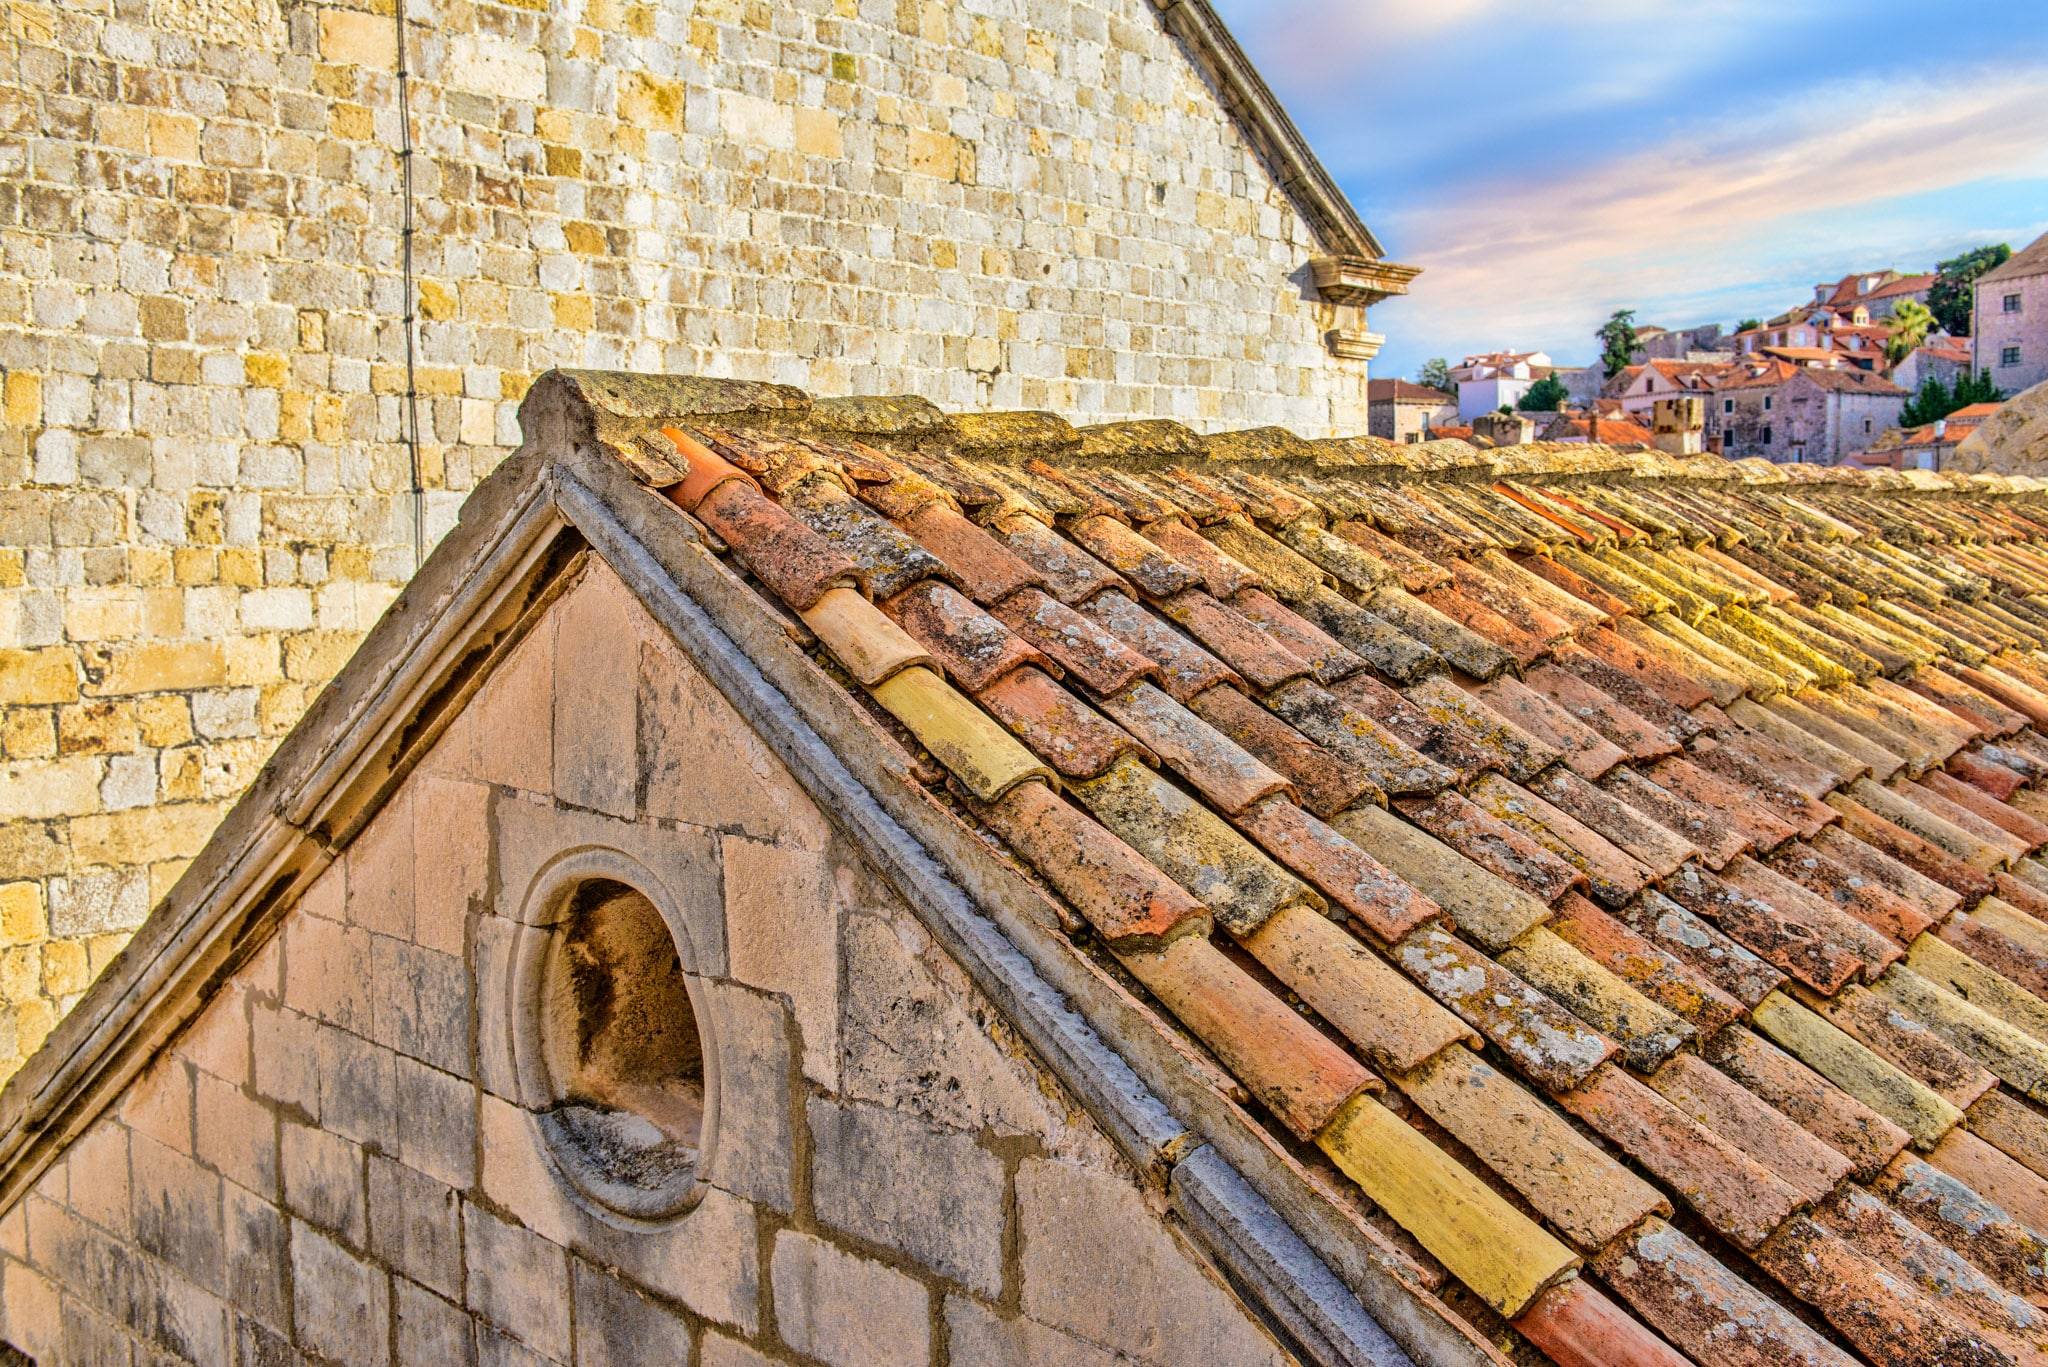 A red-tiled roof and pediment as seen from the city walls of Dubrovnik Old Town in Croatia.